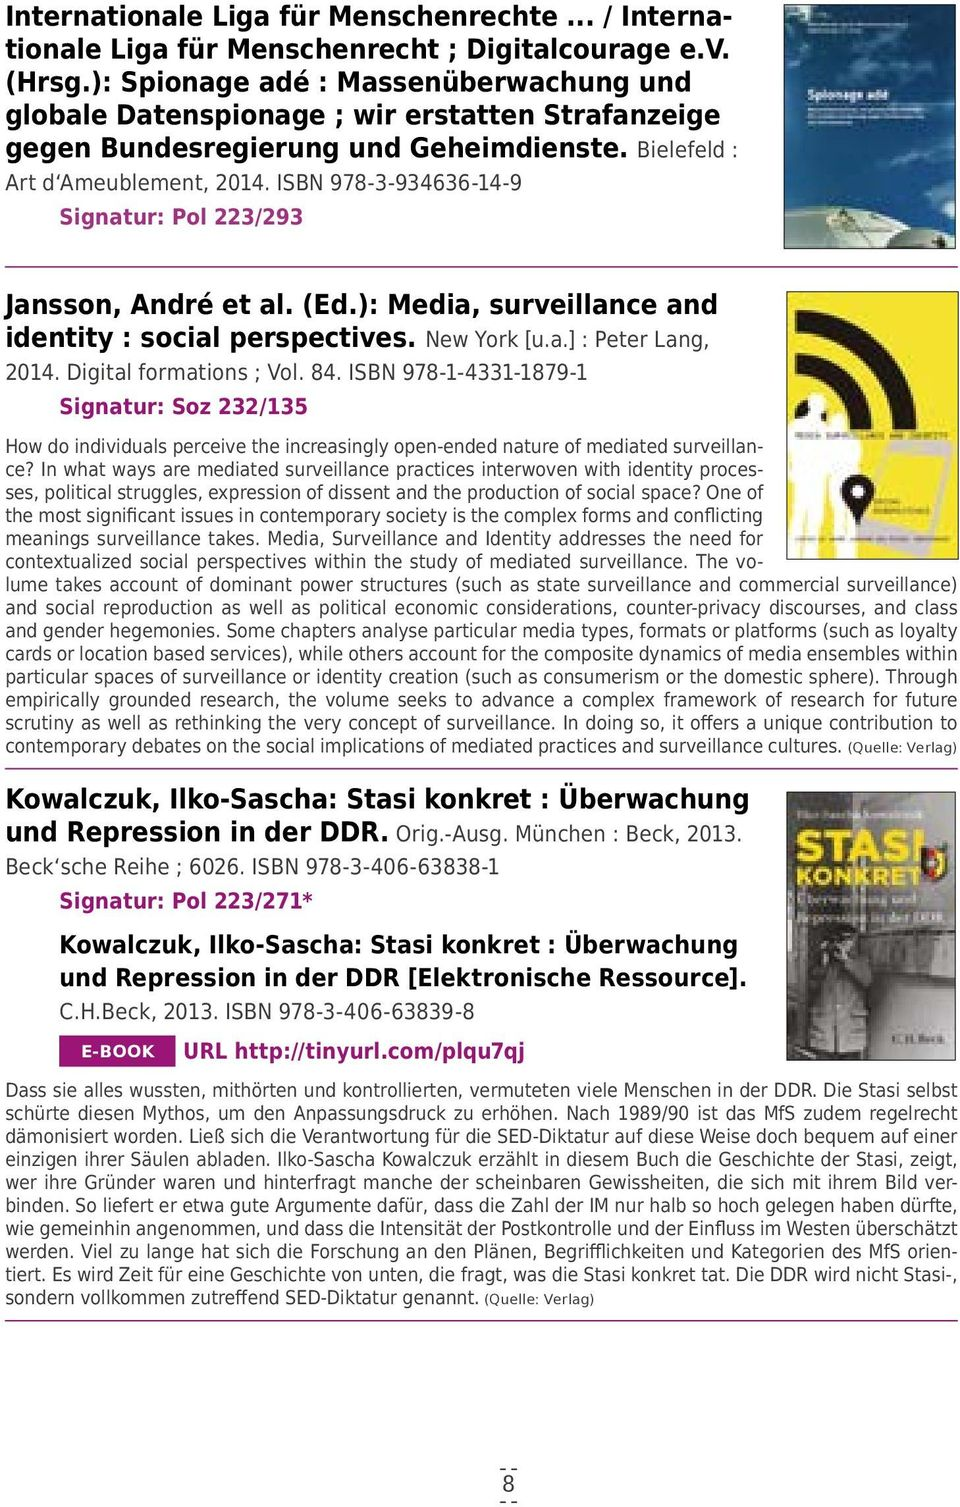 ISBN 978-3-934636-14-9 Signatur: Pol 223/293 Jansson, André et al. (Ed.): Media, surveillance and identity : social perspectives. New York [u.a.] : Peter Lang, 2014. Digital formations ; Vol. 84.